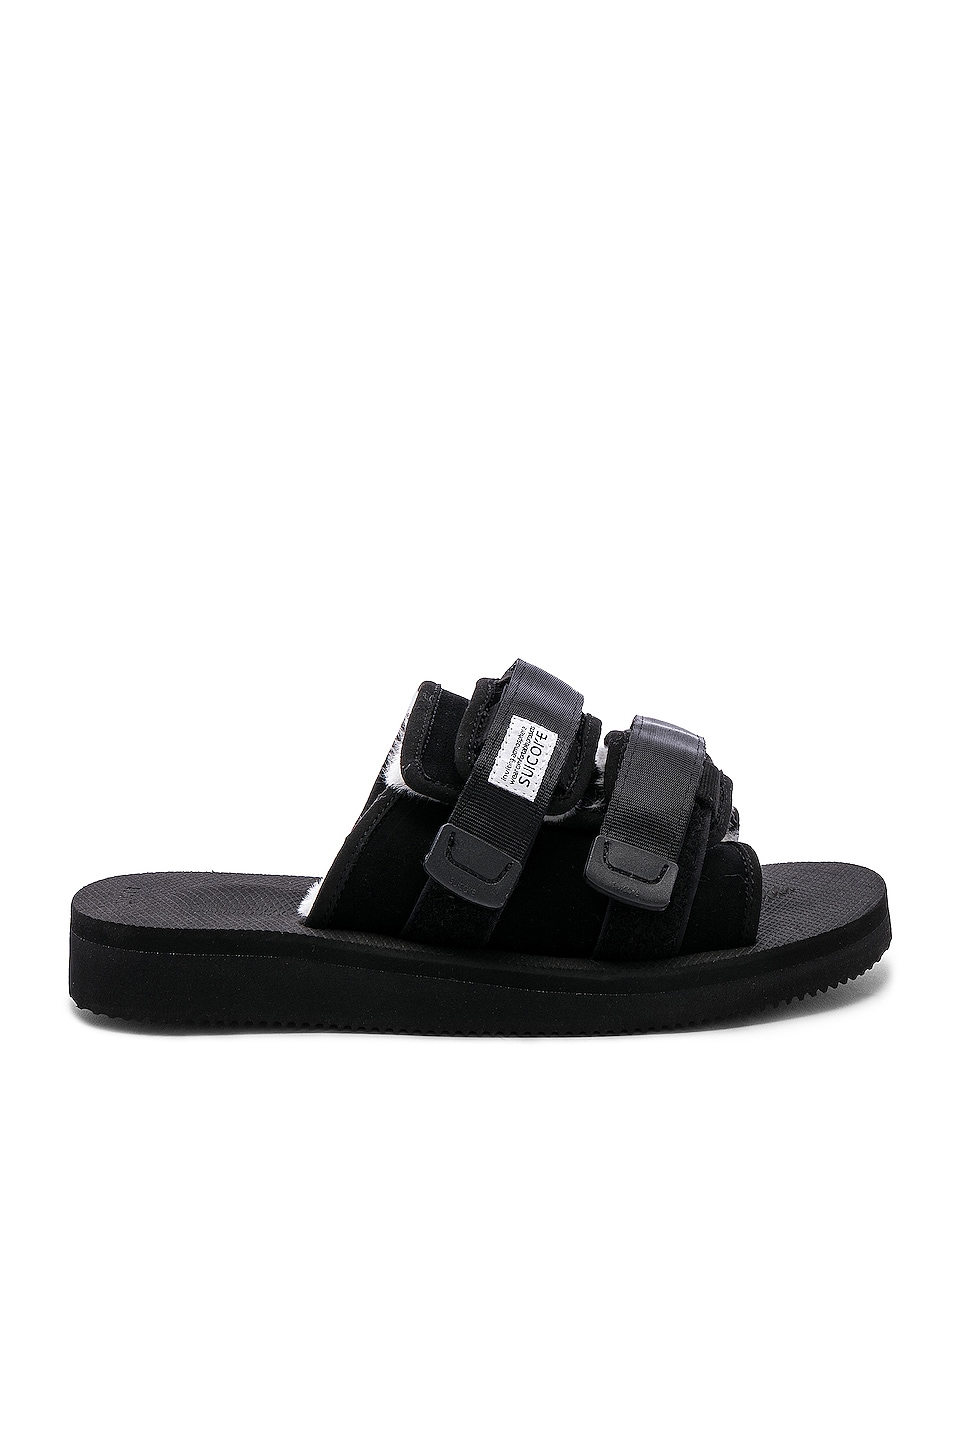 Suicoke MOTO-Mab in Black